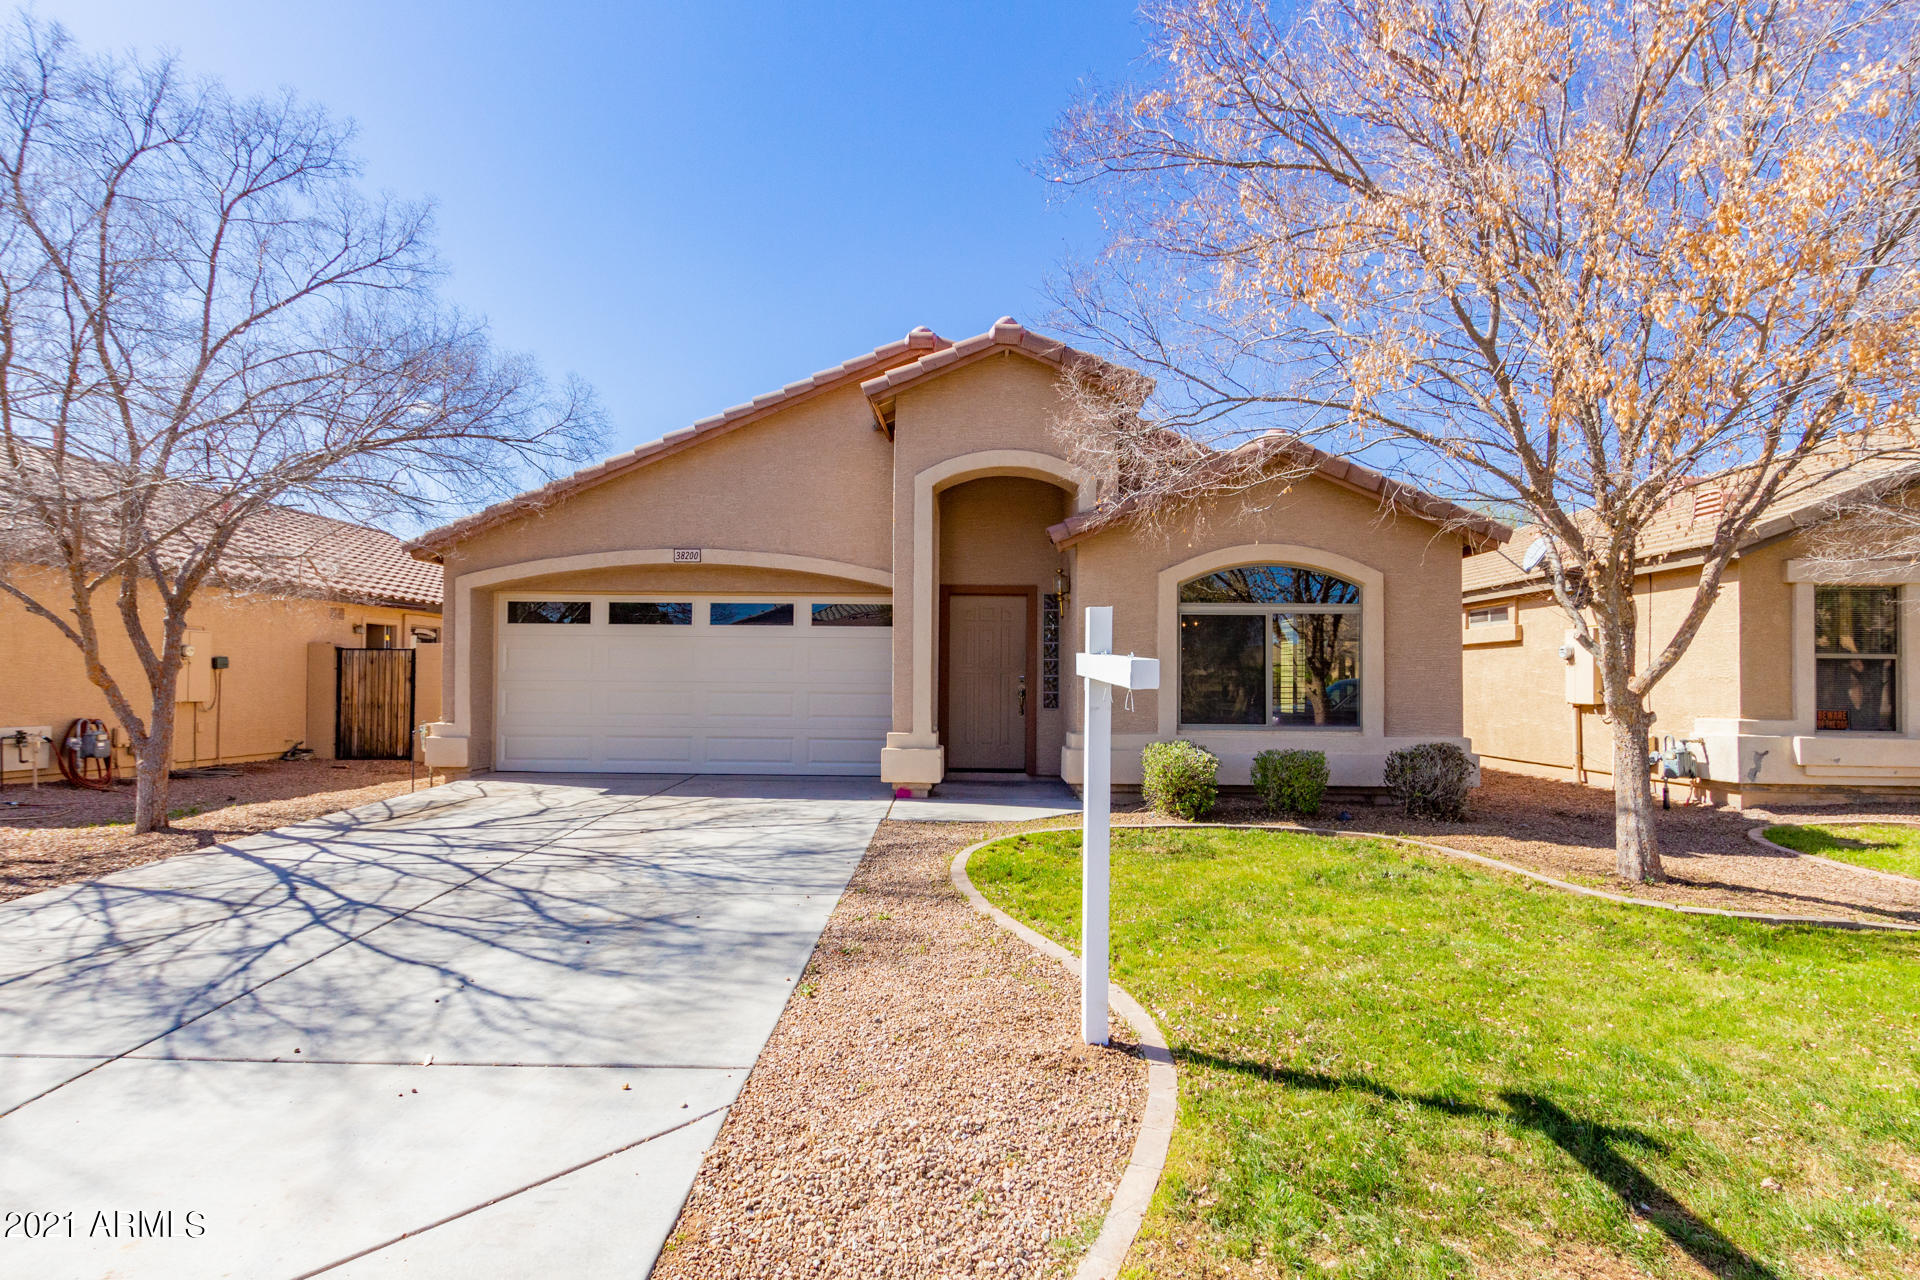 38200 N SANDY Drive, San Tan Valley AZ 85140